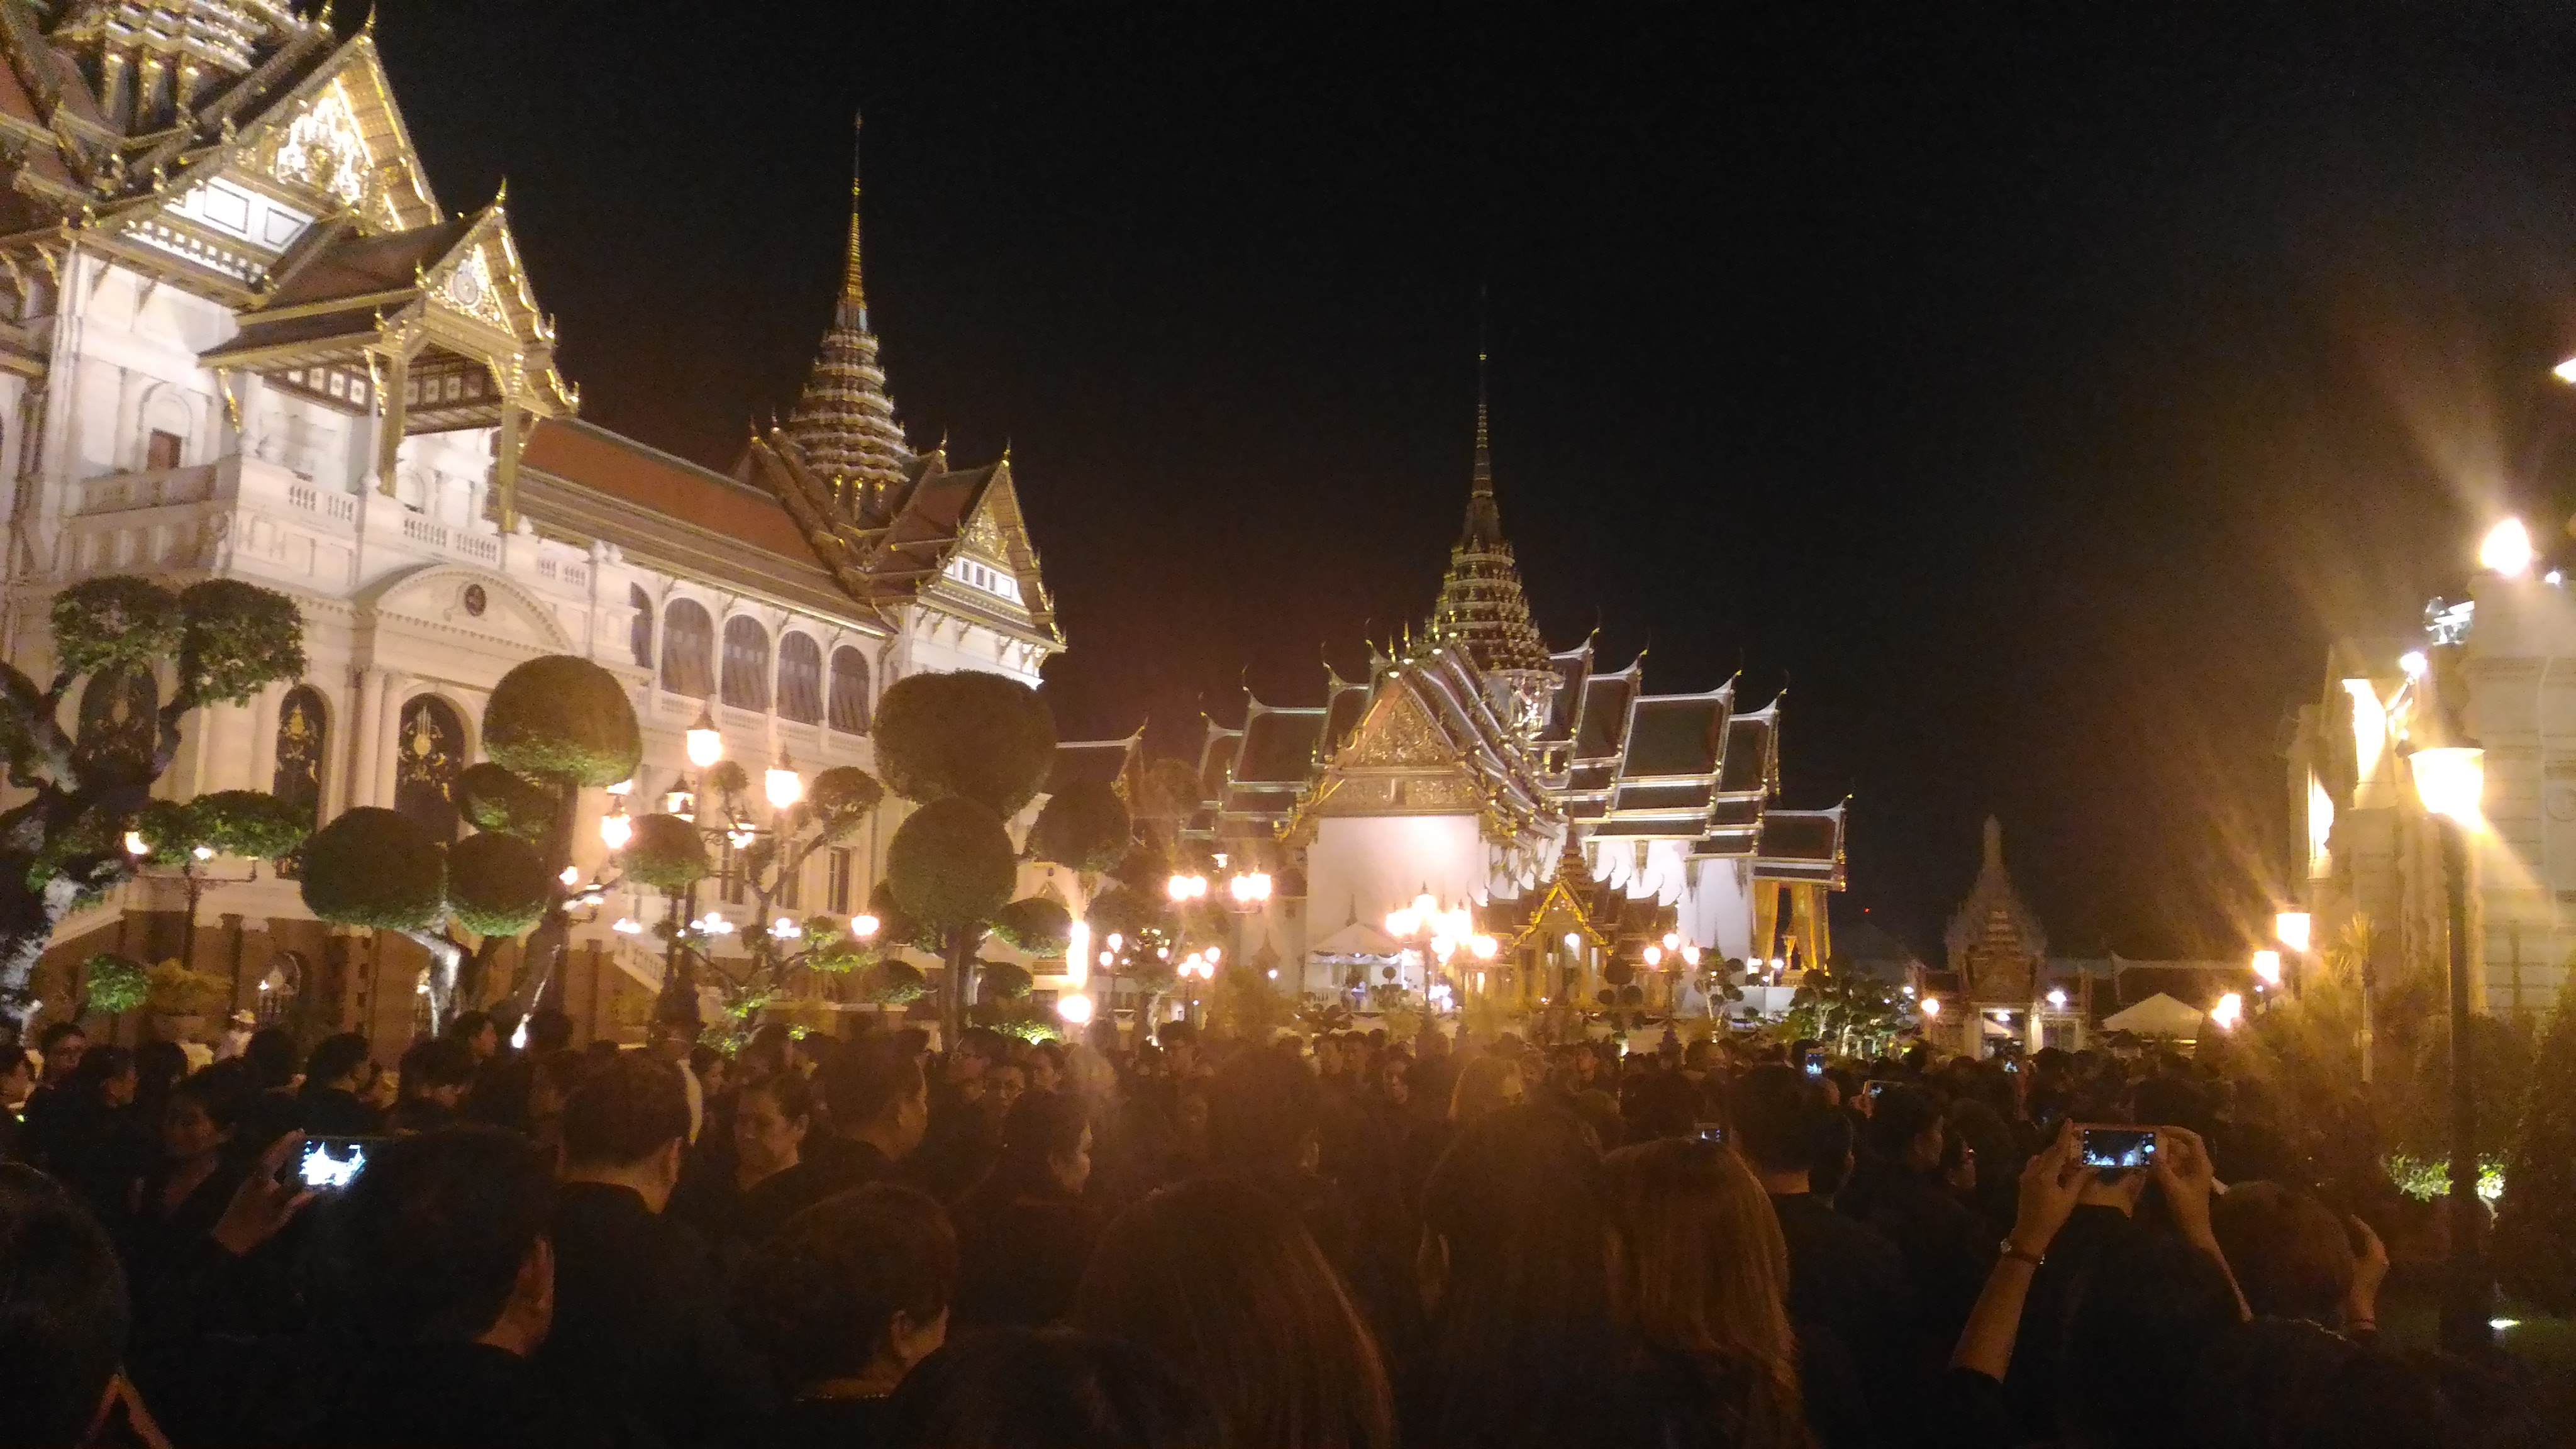 Queuing in the middle of the night to pay respect to His Majesty the late King Bhumibol Adulyadej at the Grand Palace in Bangkok. Photo taken on December 6, 2016.